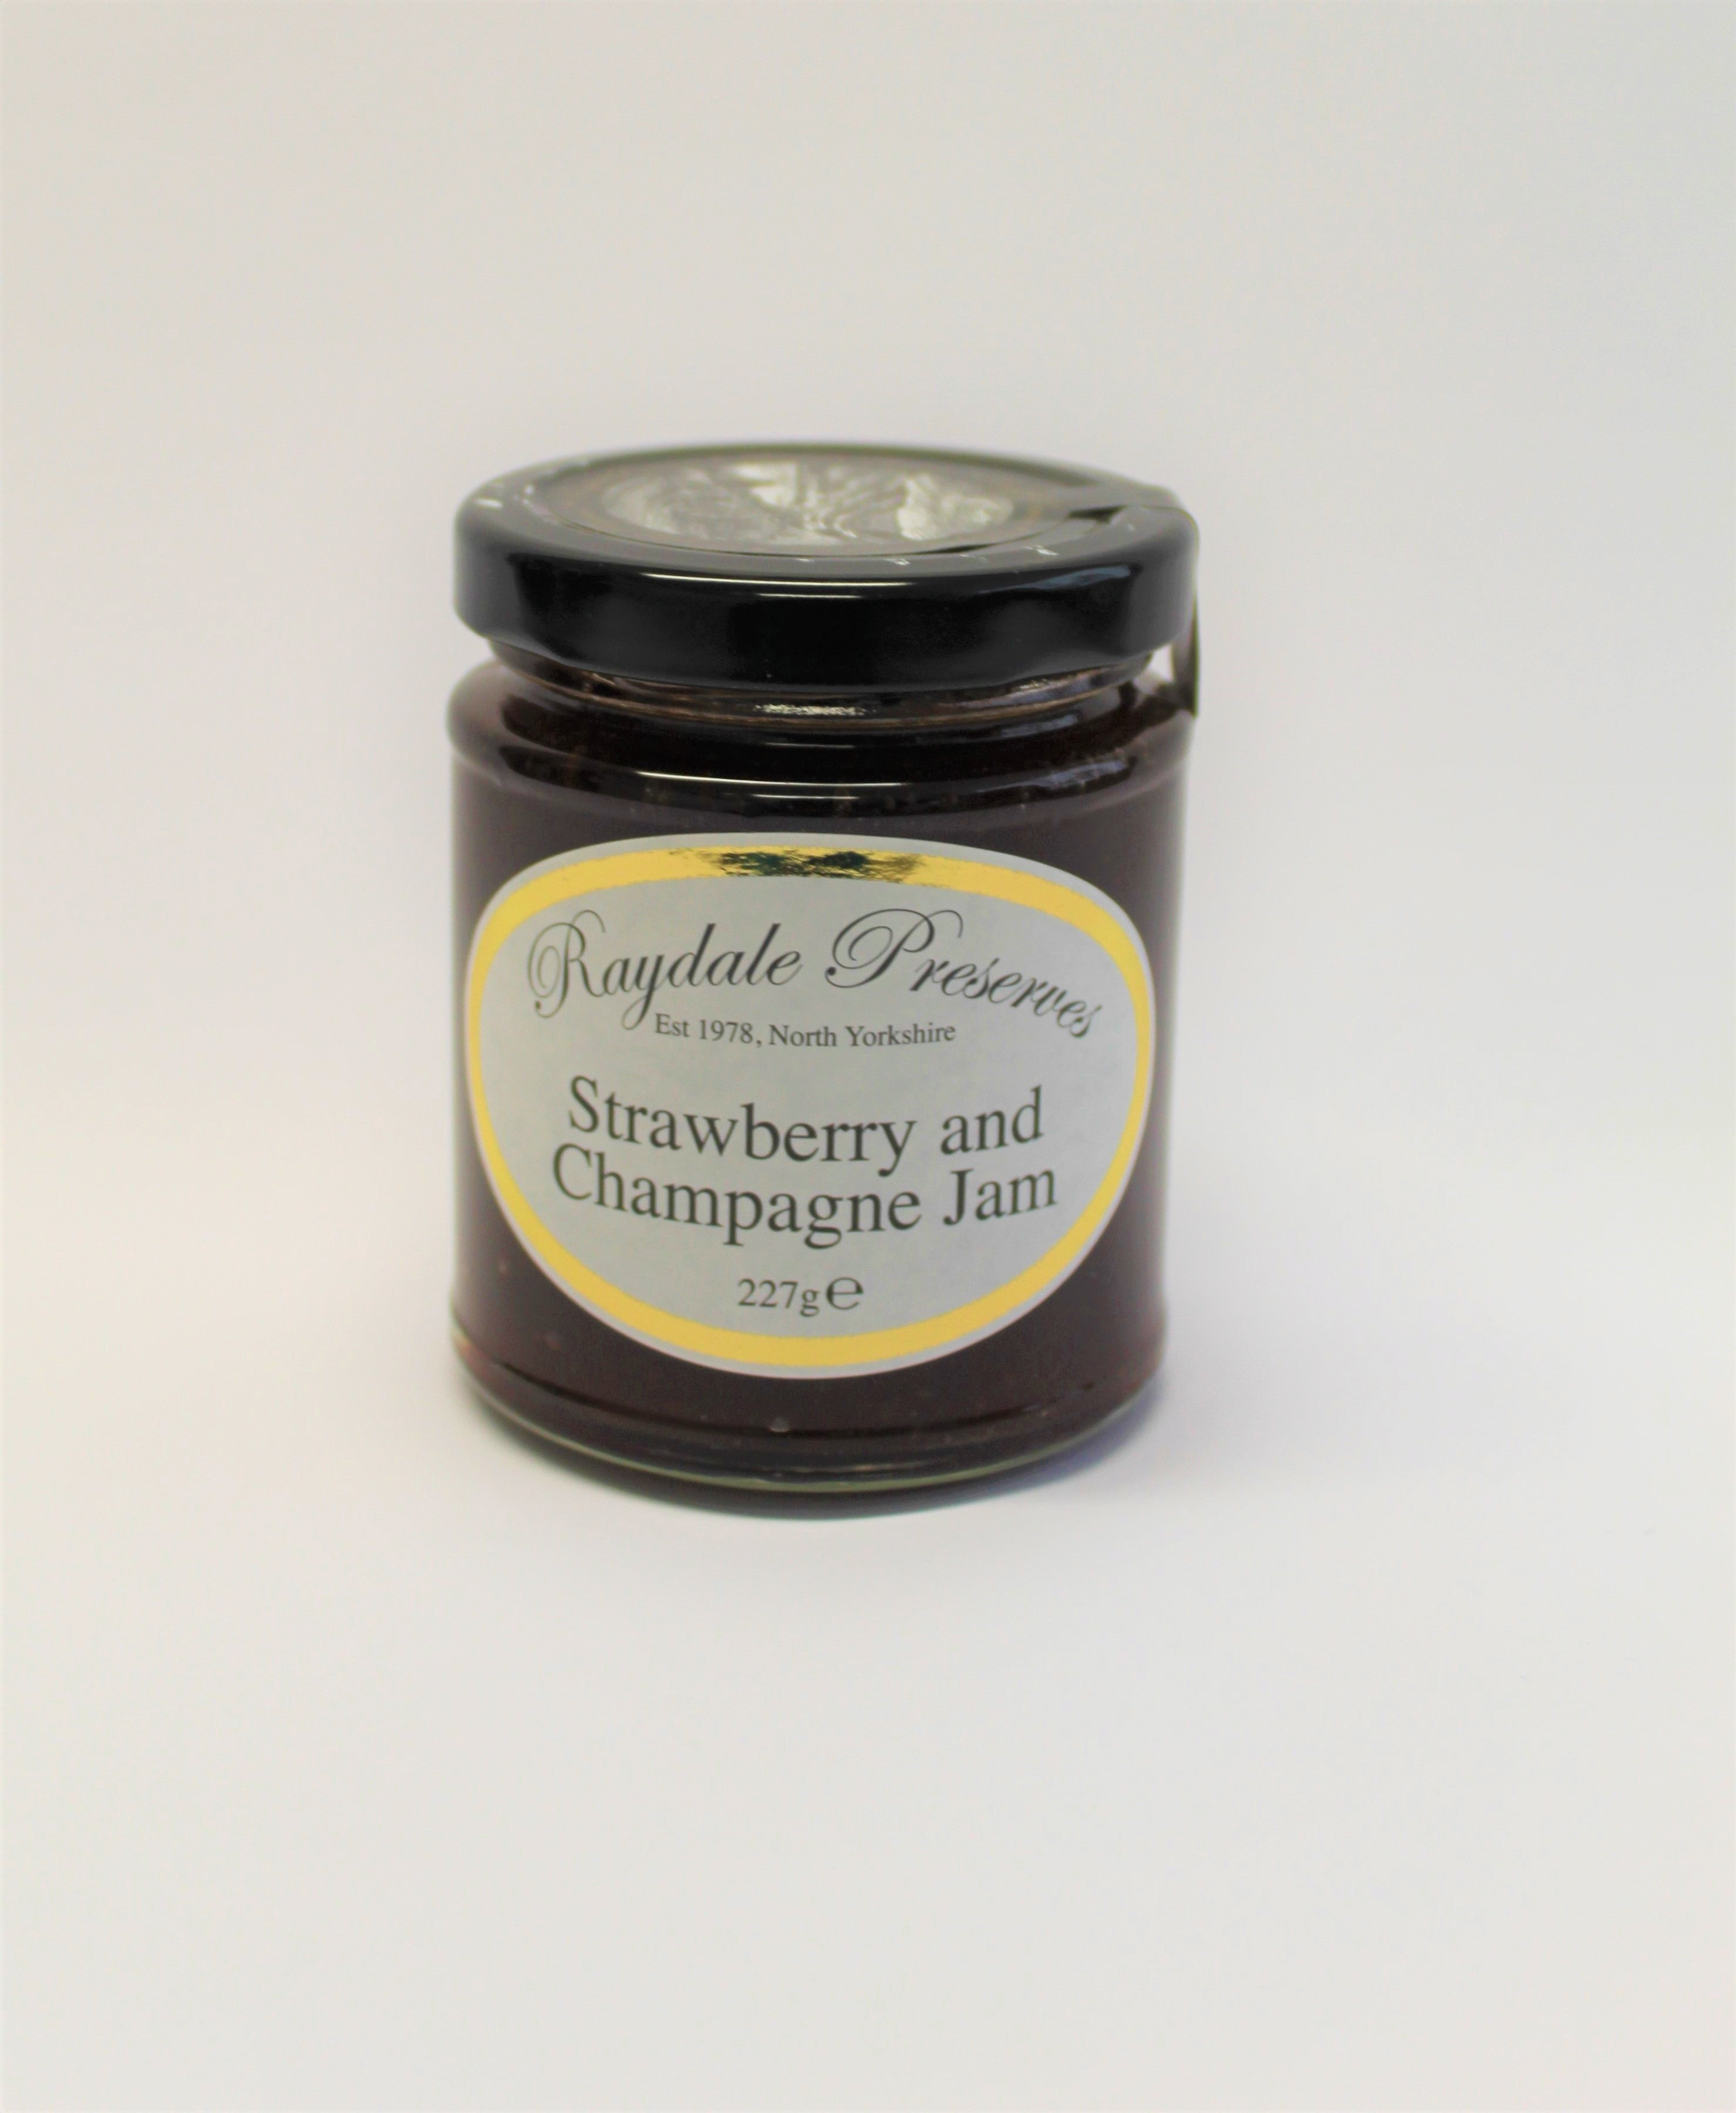 Stawberry and Champayne Jam, deliciously Yorkshire Strawberries combined with a generous sparkle of of Champayne